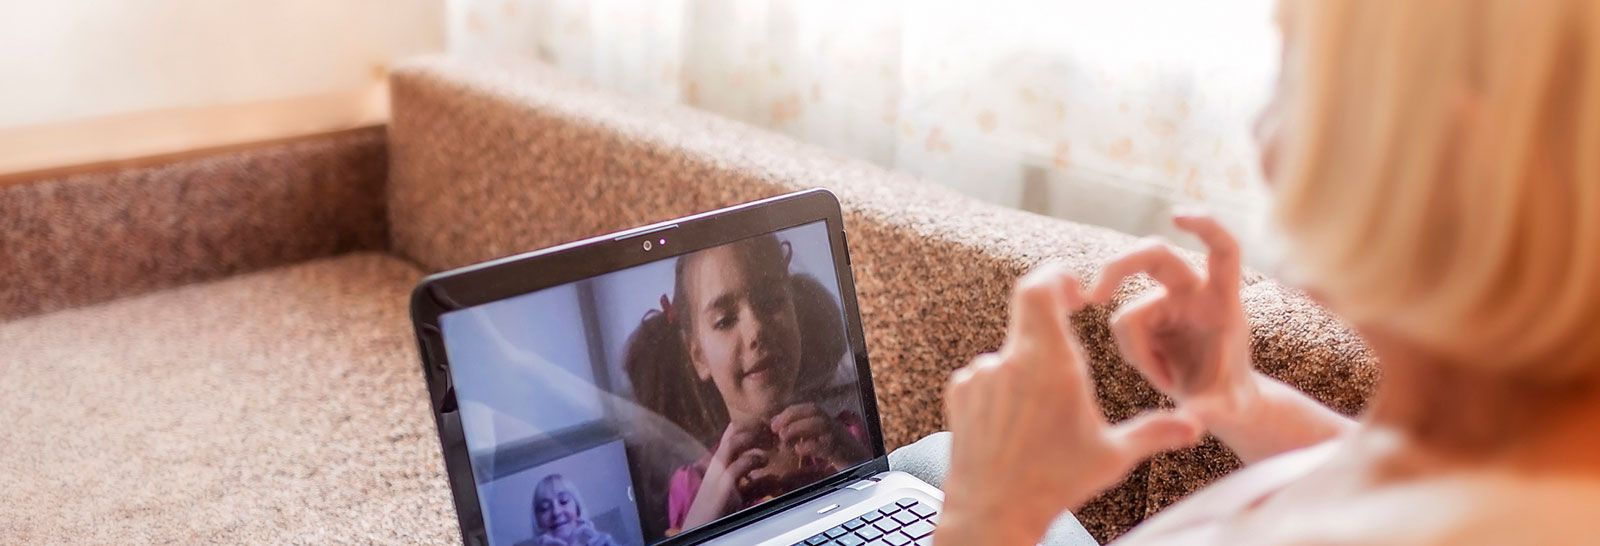 Older woman and grandchild in video call banner image